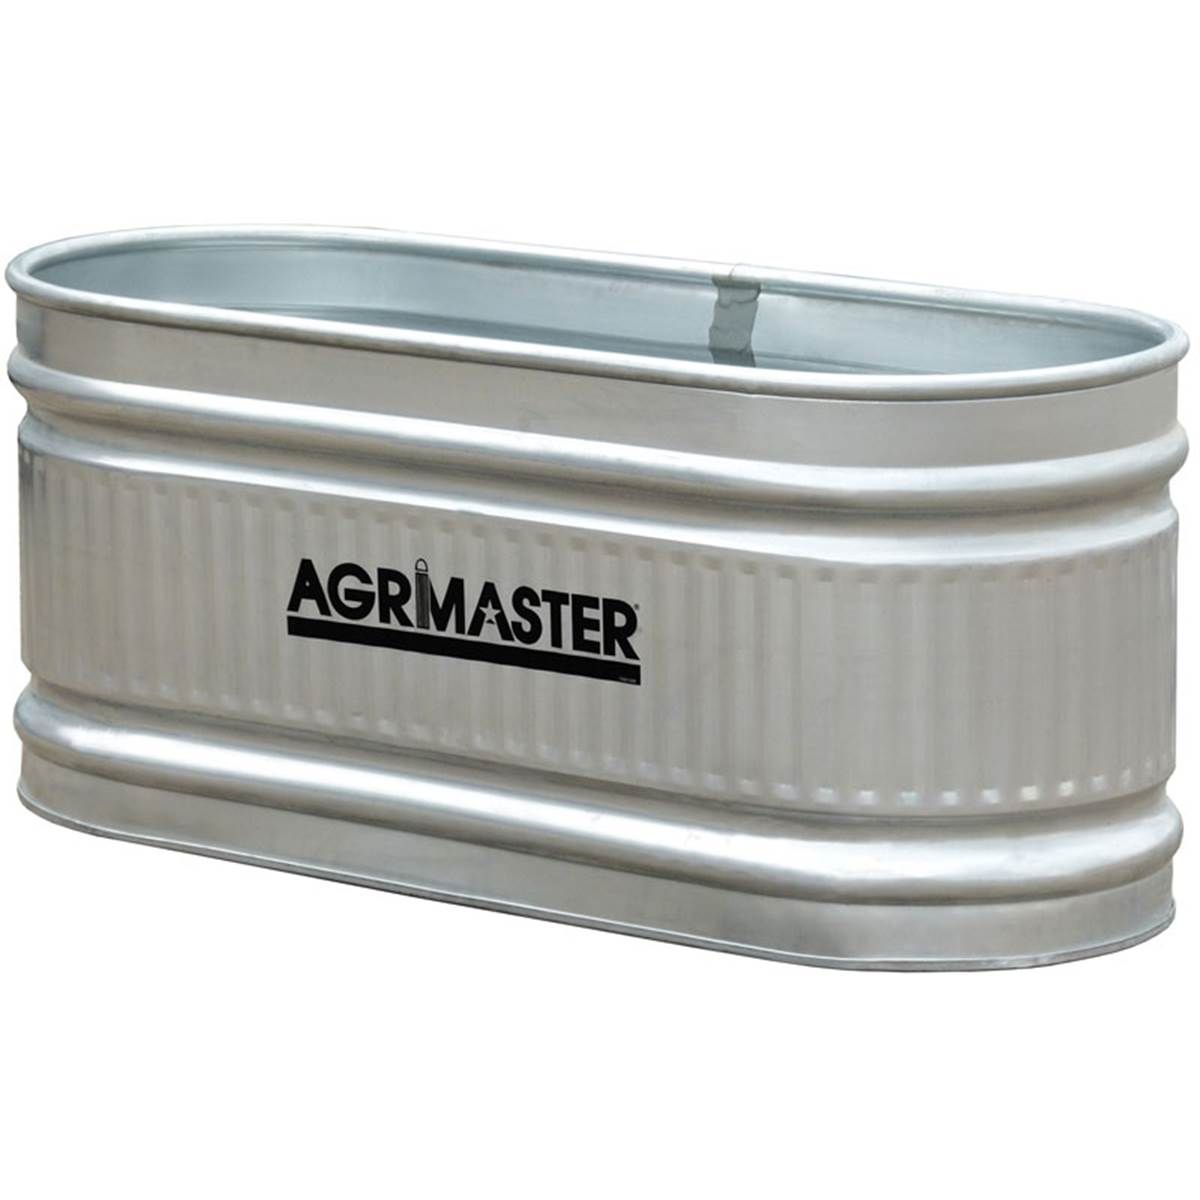 Agrimaster Galvanized Stock Tank By Behlen Country Galvanized Stock Tank Stock Tank Stock Tank Pool Diy